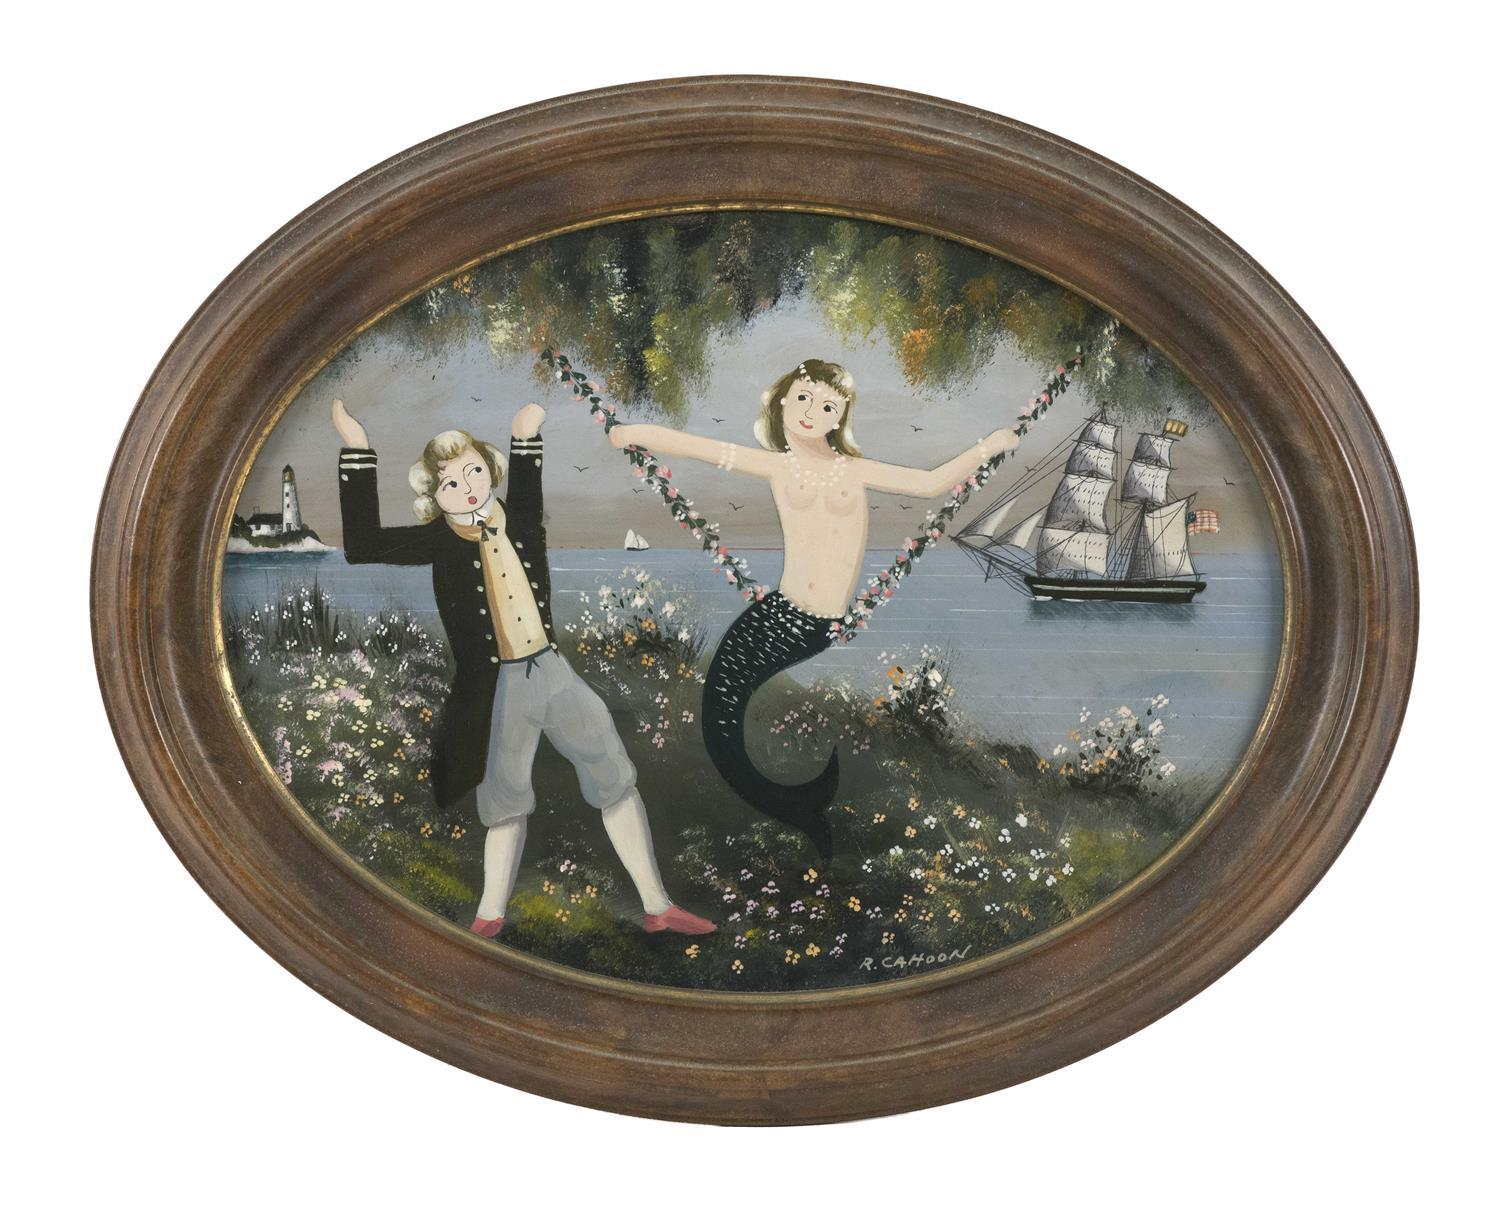 """RALPH EUGENE CAHOON JR., Cape Cod, 1910-1982, A man stands in delight as a mermaid sits on a swing., Oil on masonite, oval 9"""" x 12""""...."""